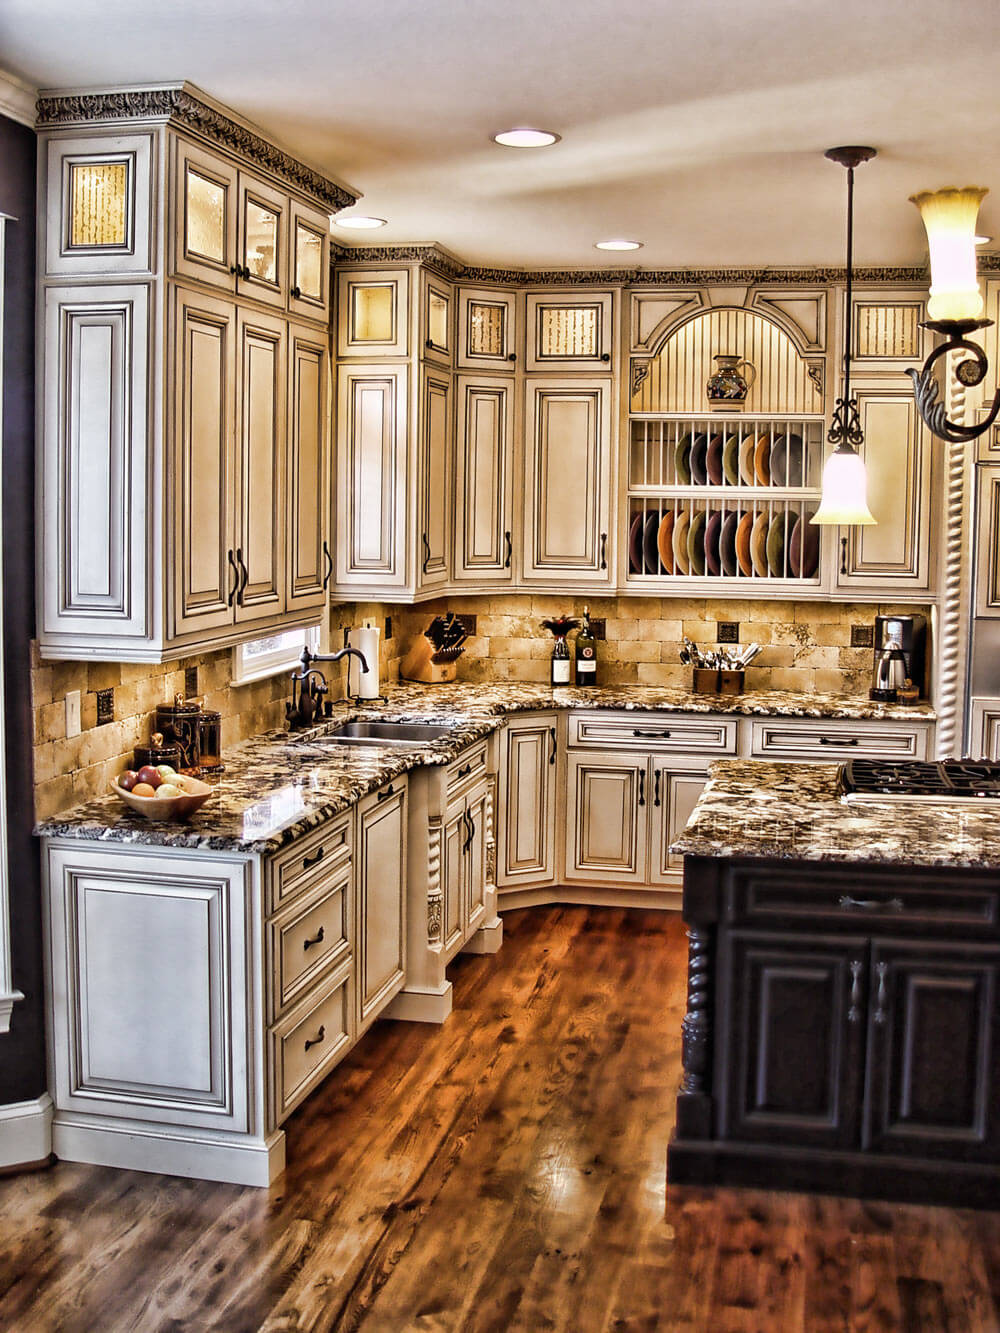 Maison-Chic Rustic Kitchen Cabinet Designs